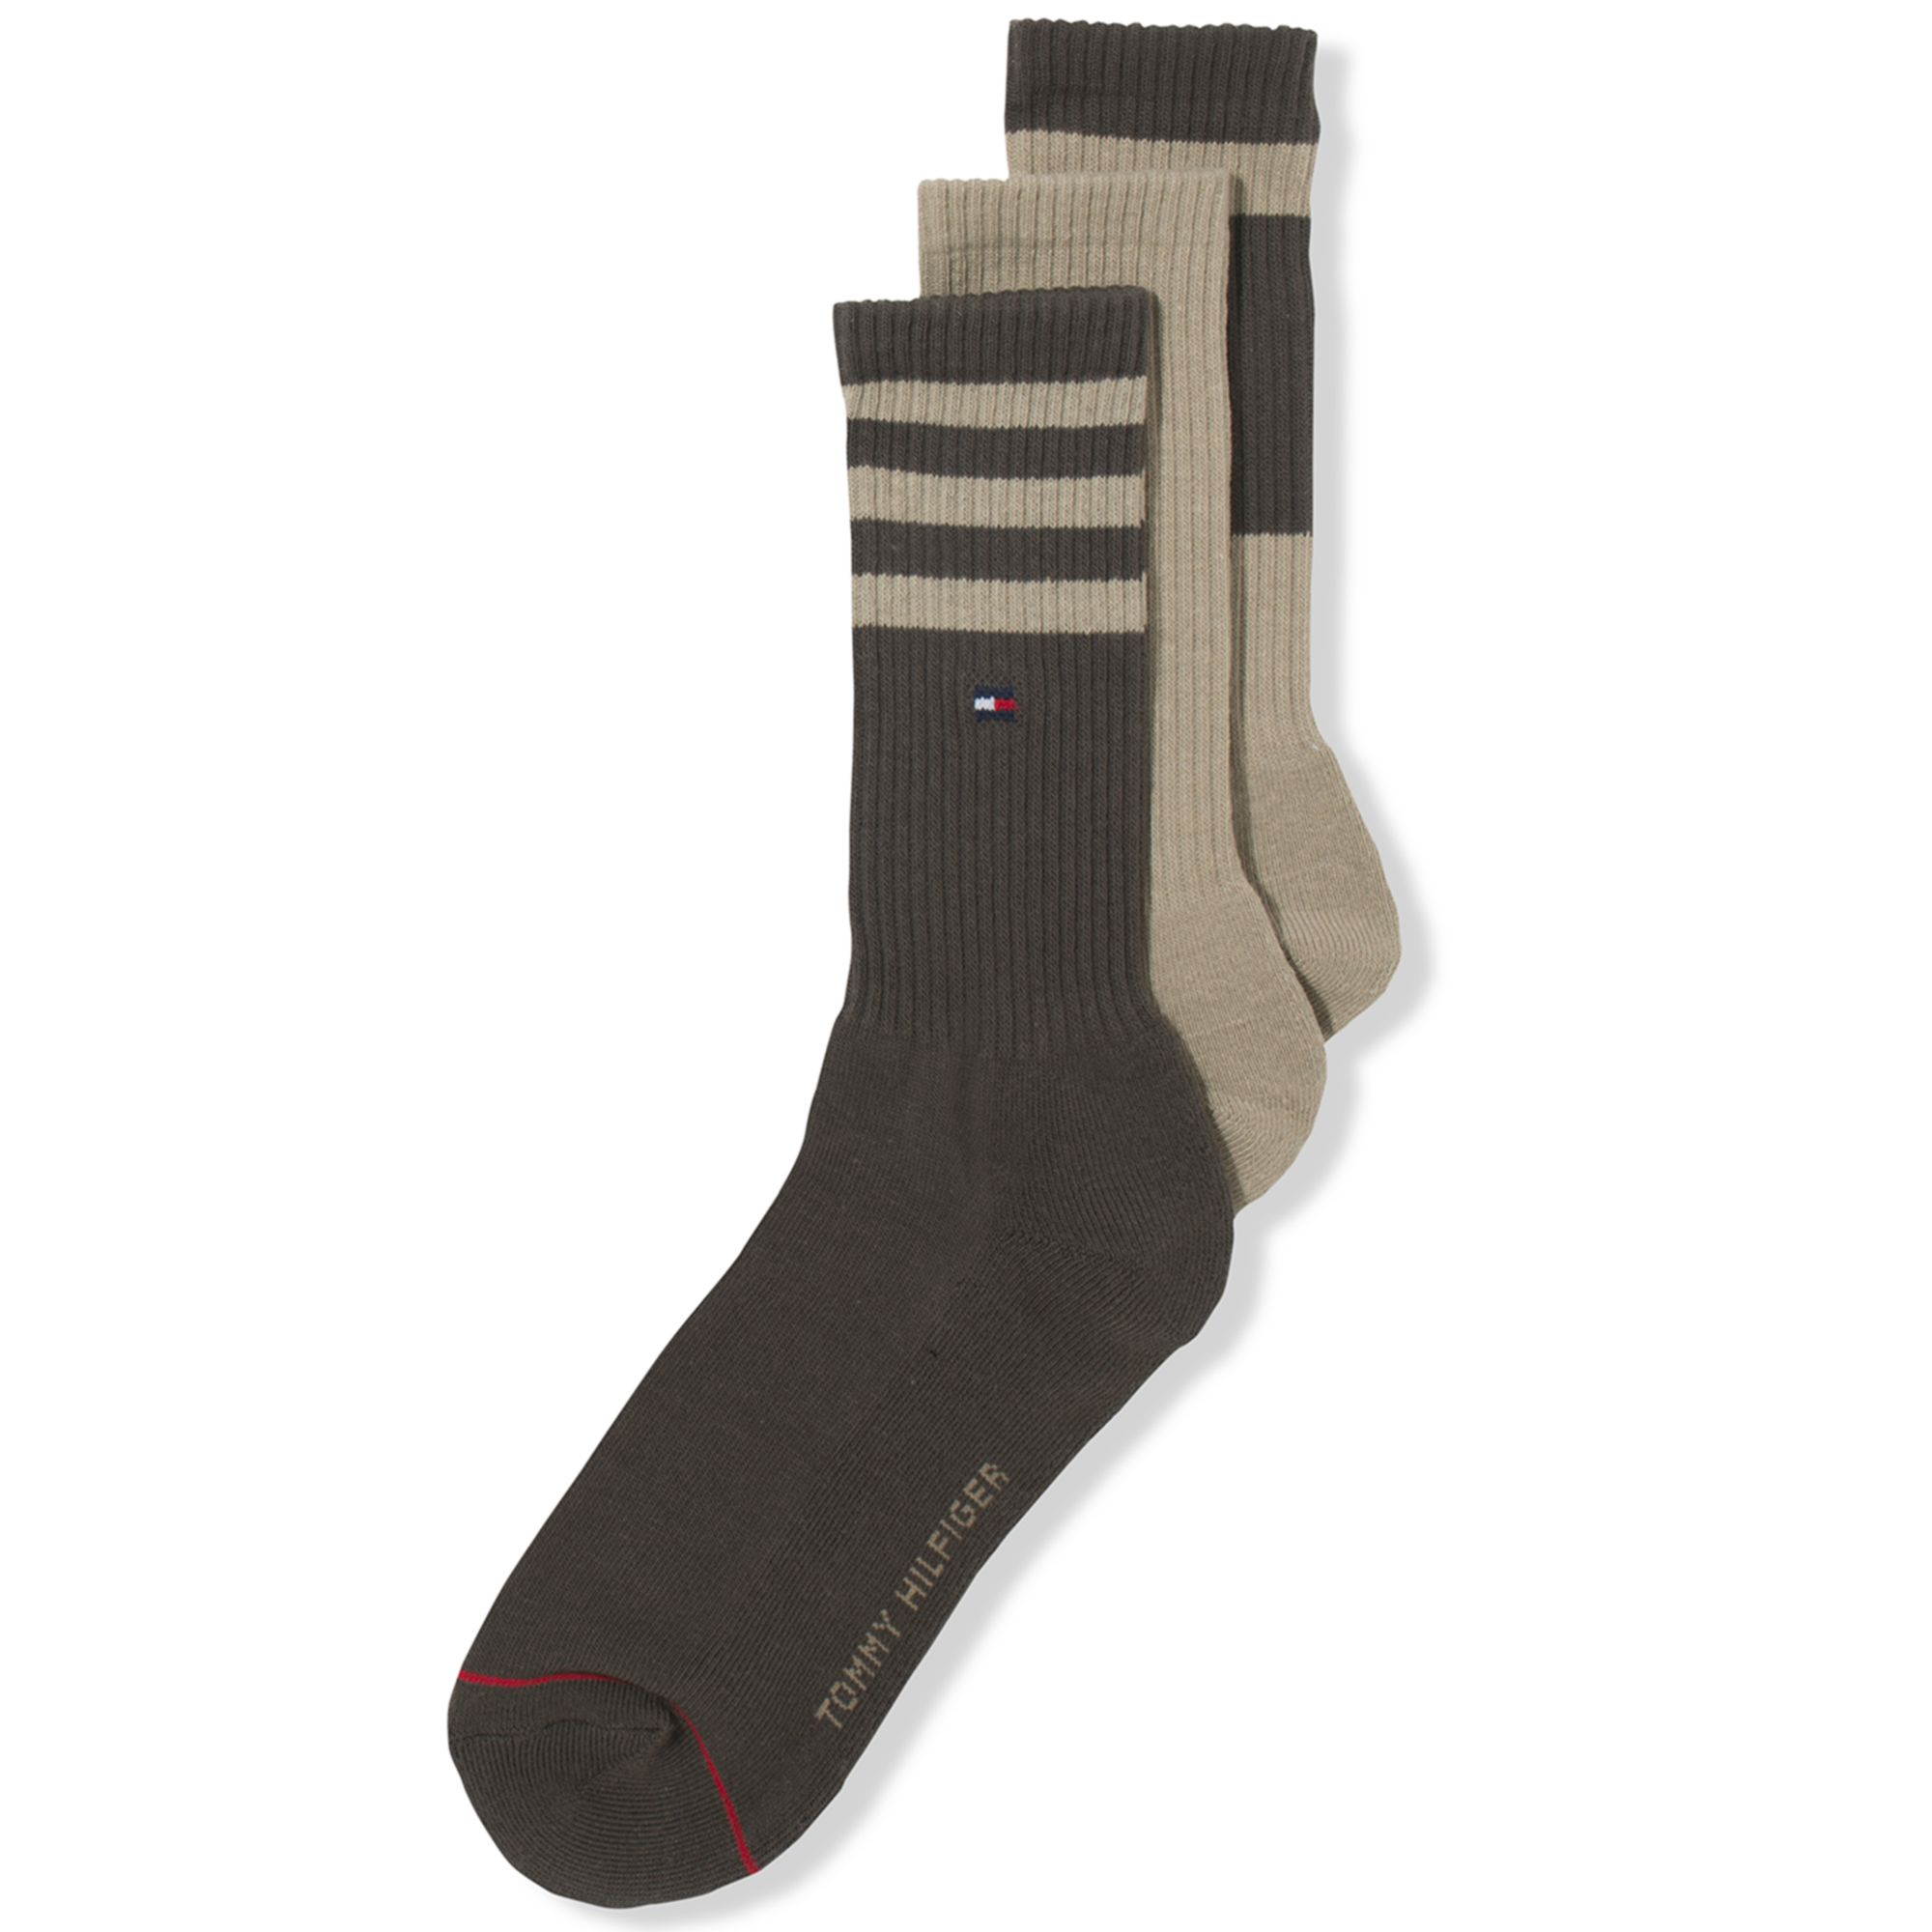 Cheap Sale Latest Collections Mens Calf Socks Tommy Hilfiger Free Shipping View For Cheap Price HefhEf